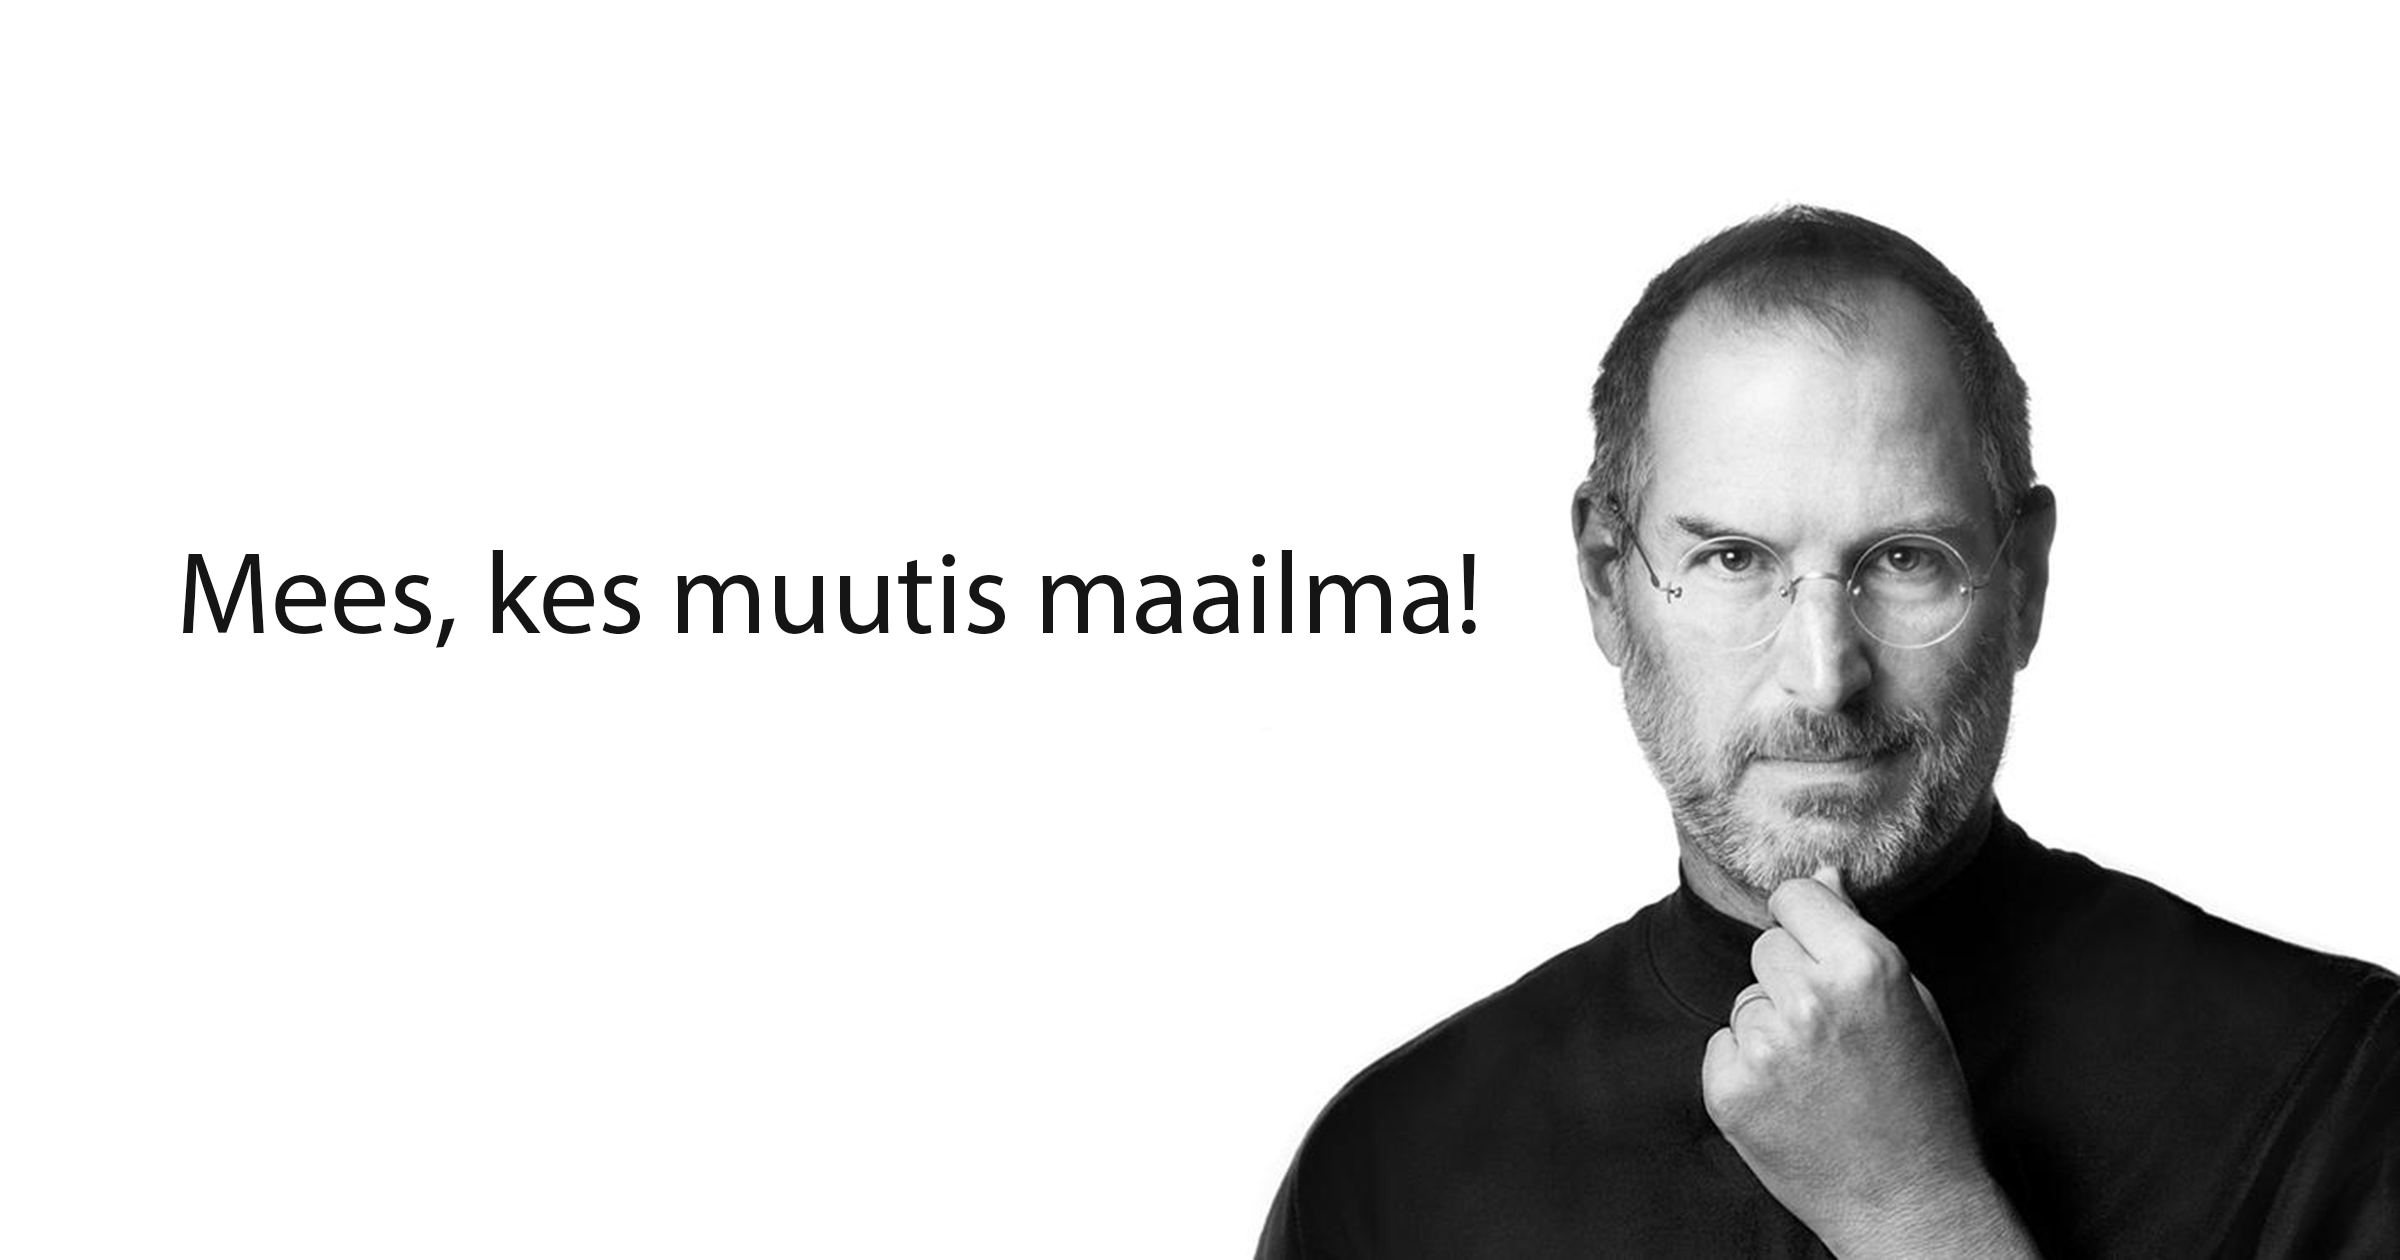 steve jobs mobipunkt apple iphone apple inc macbook imac apple watch iphone 8 iphone x ipod iphone 2g esimene iphone